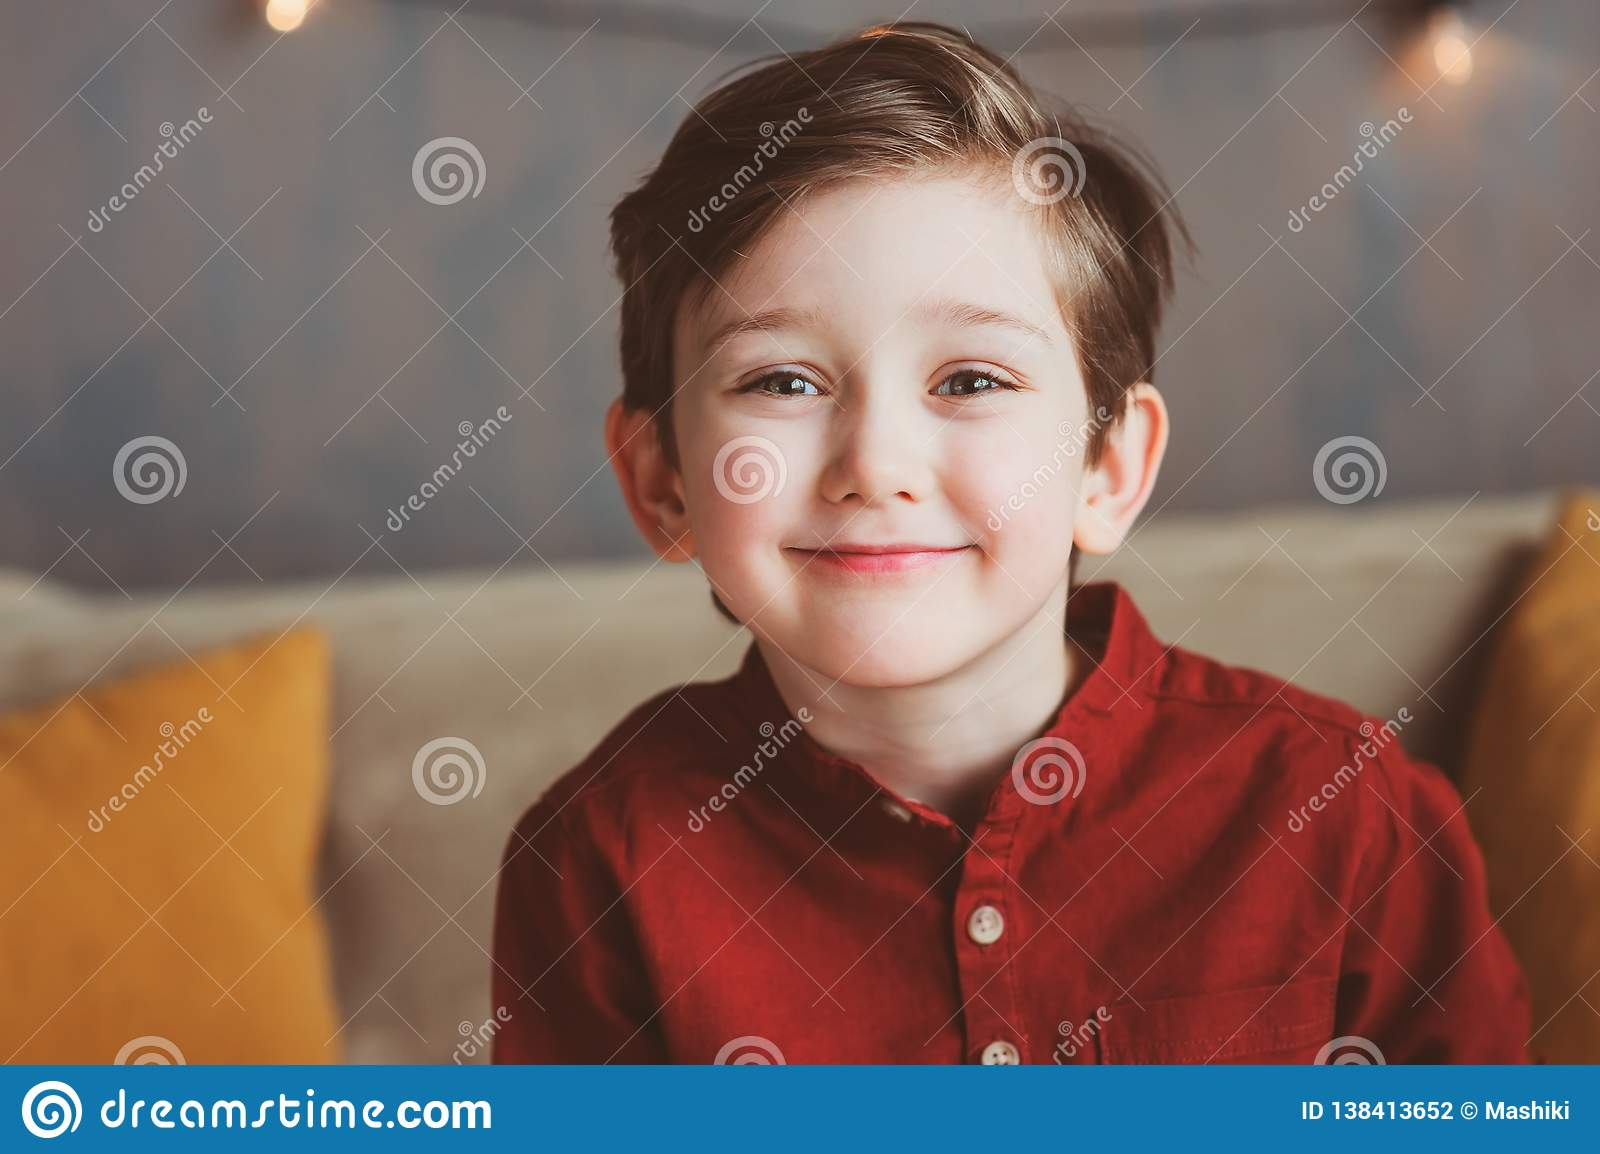 indoor portrait of happy handsome stylish child boy sitting on cozy couch